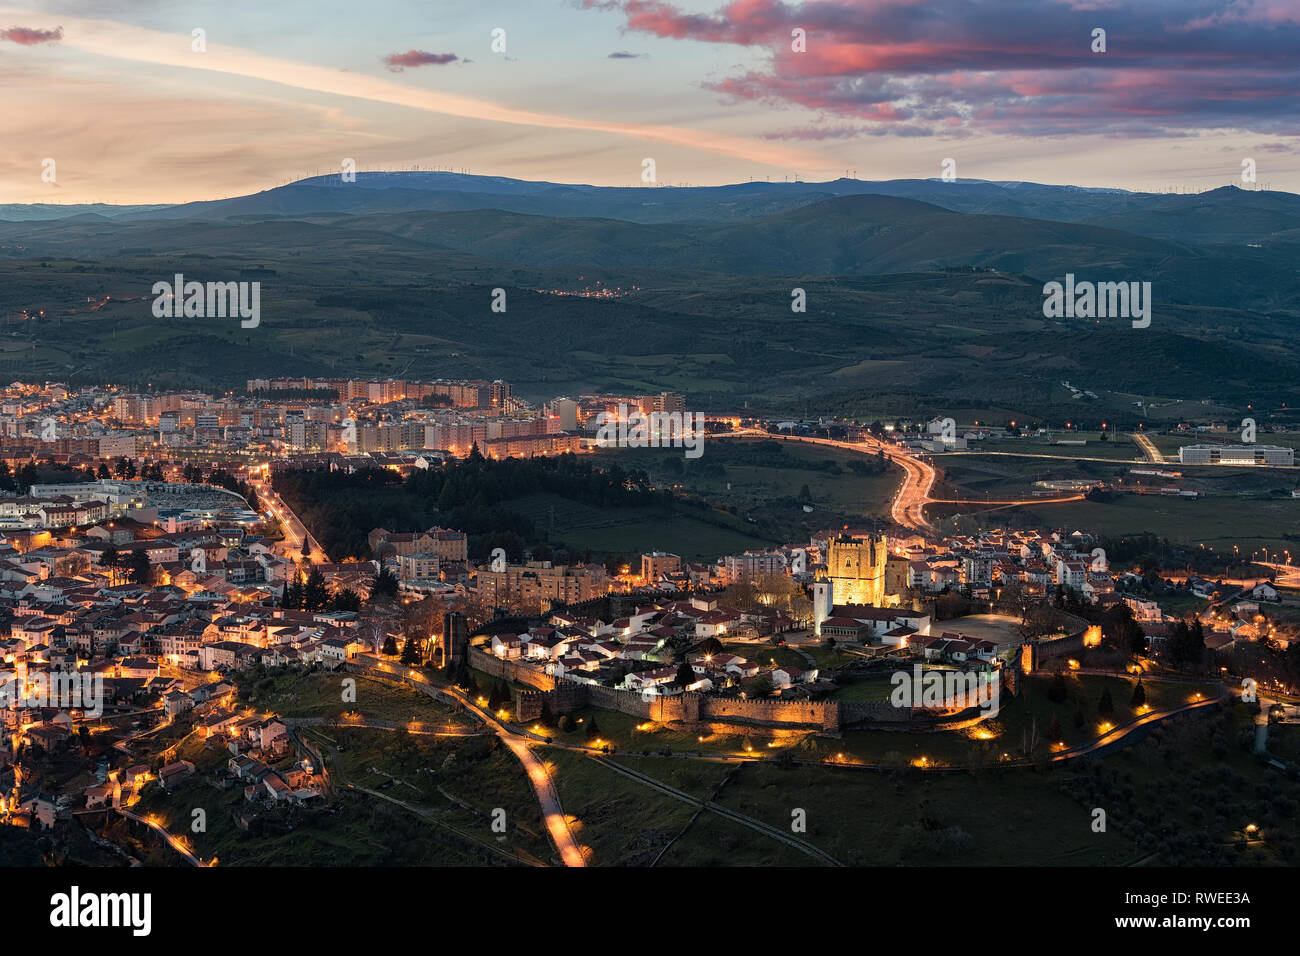 Pôr do Sol em Bragança, visto do alto de S. Bartolomeu - Stock Image